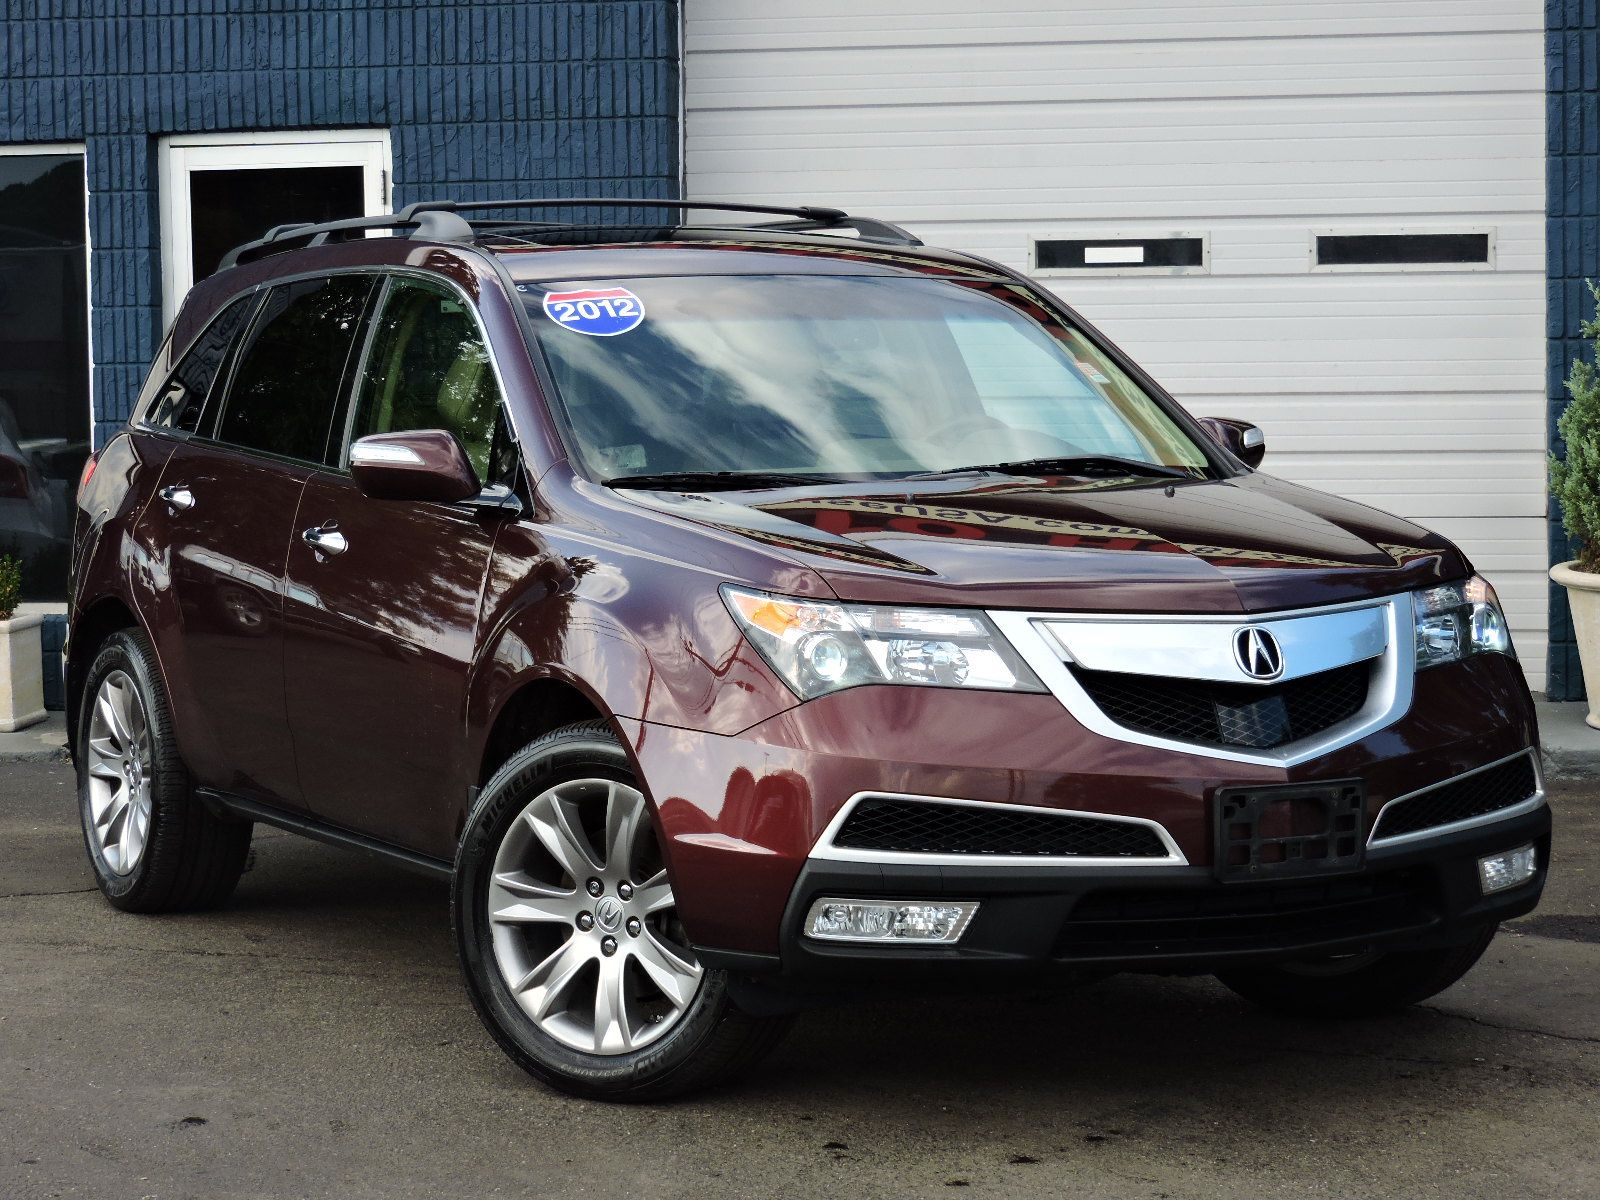 Used 2012 Acura MDX AdvanceEntertainment Pkg at Saugus Auto Mall Acura M D X on